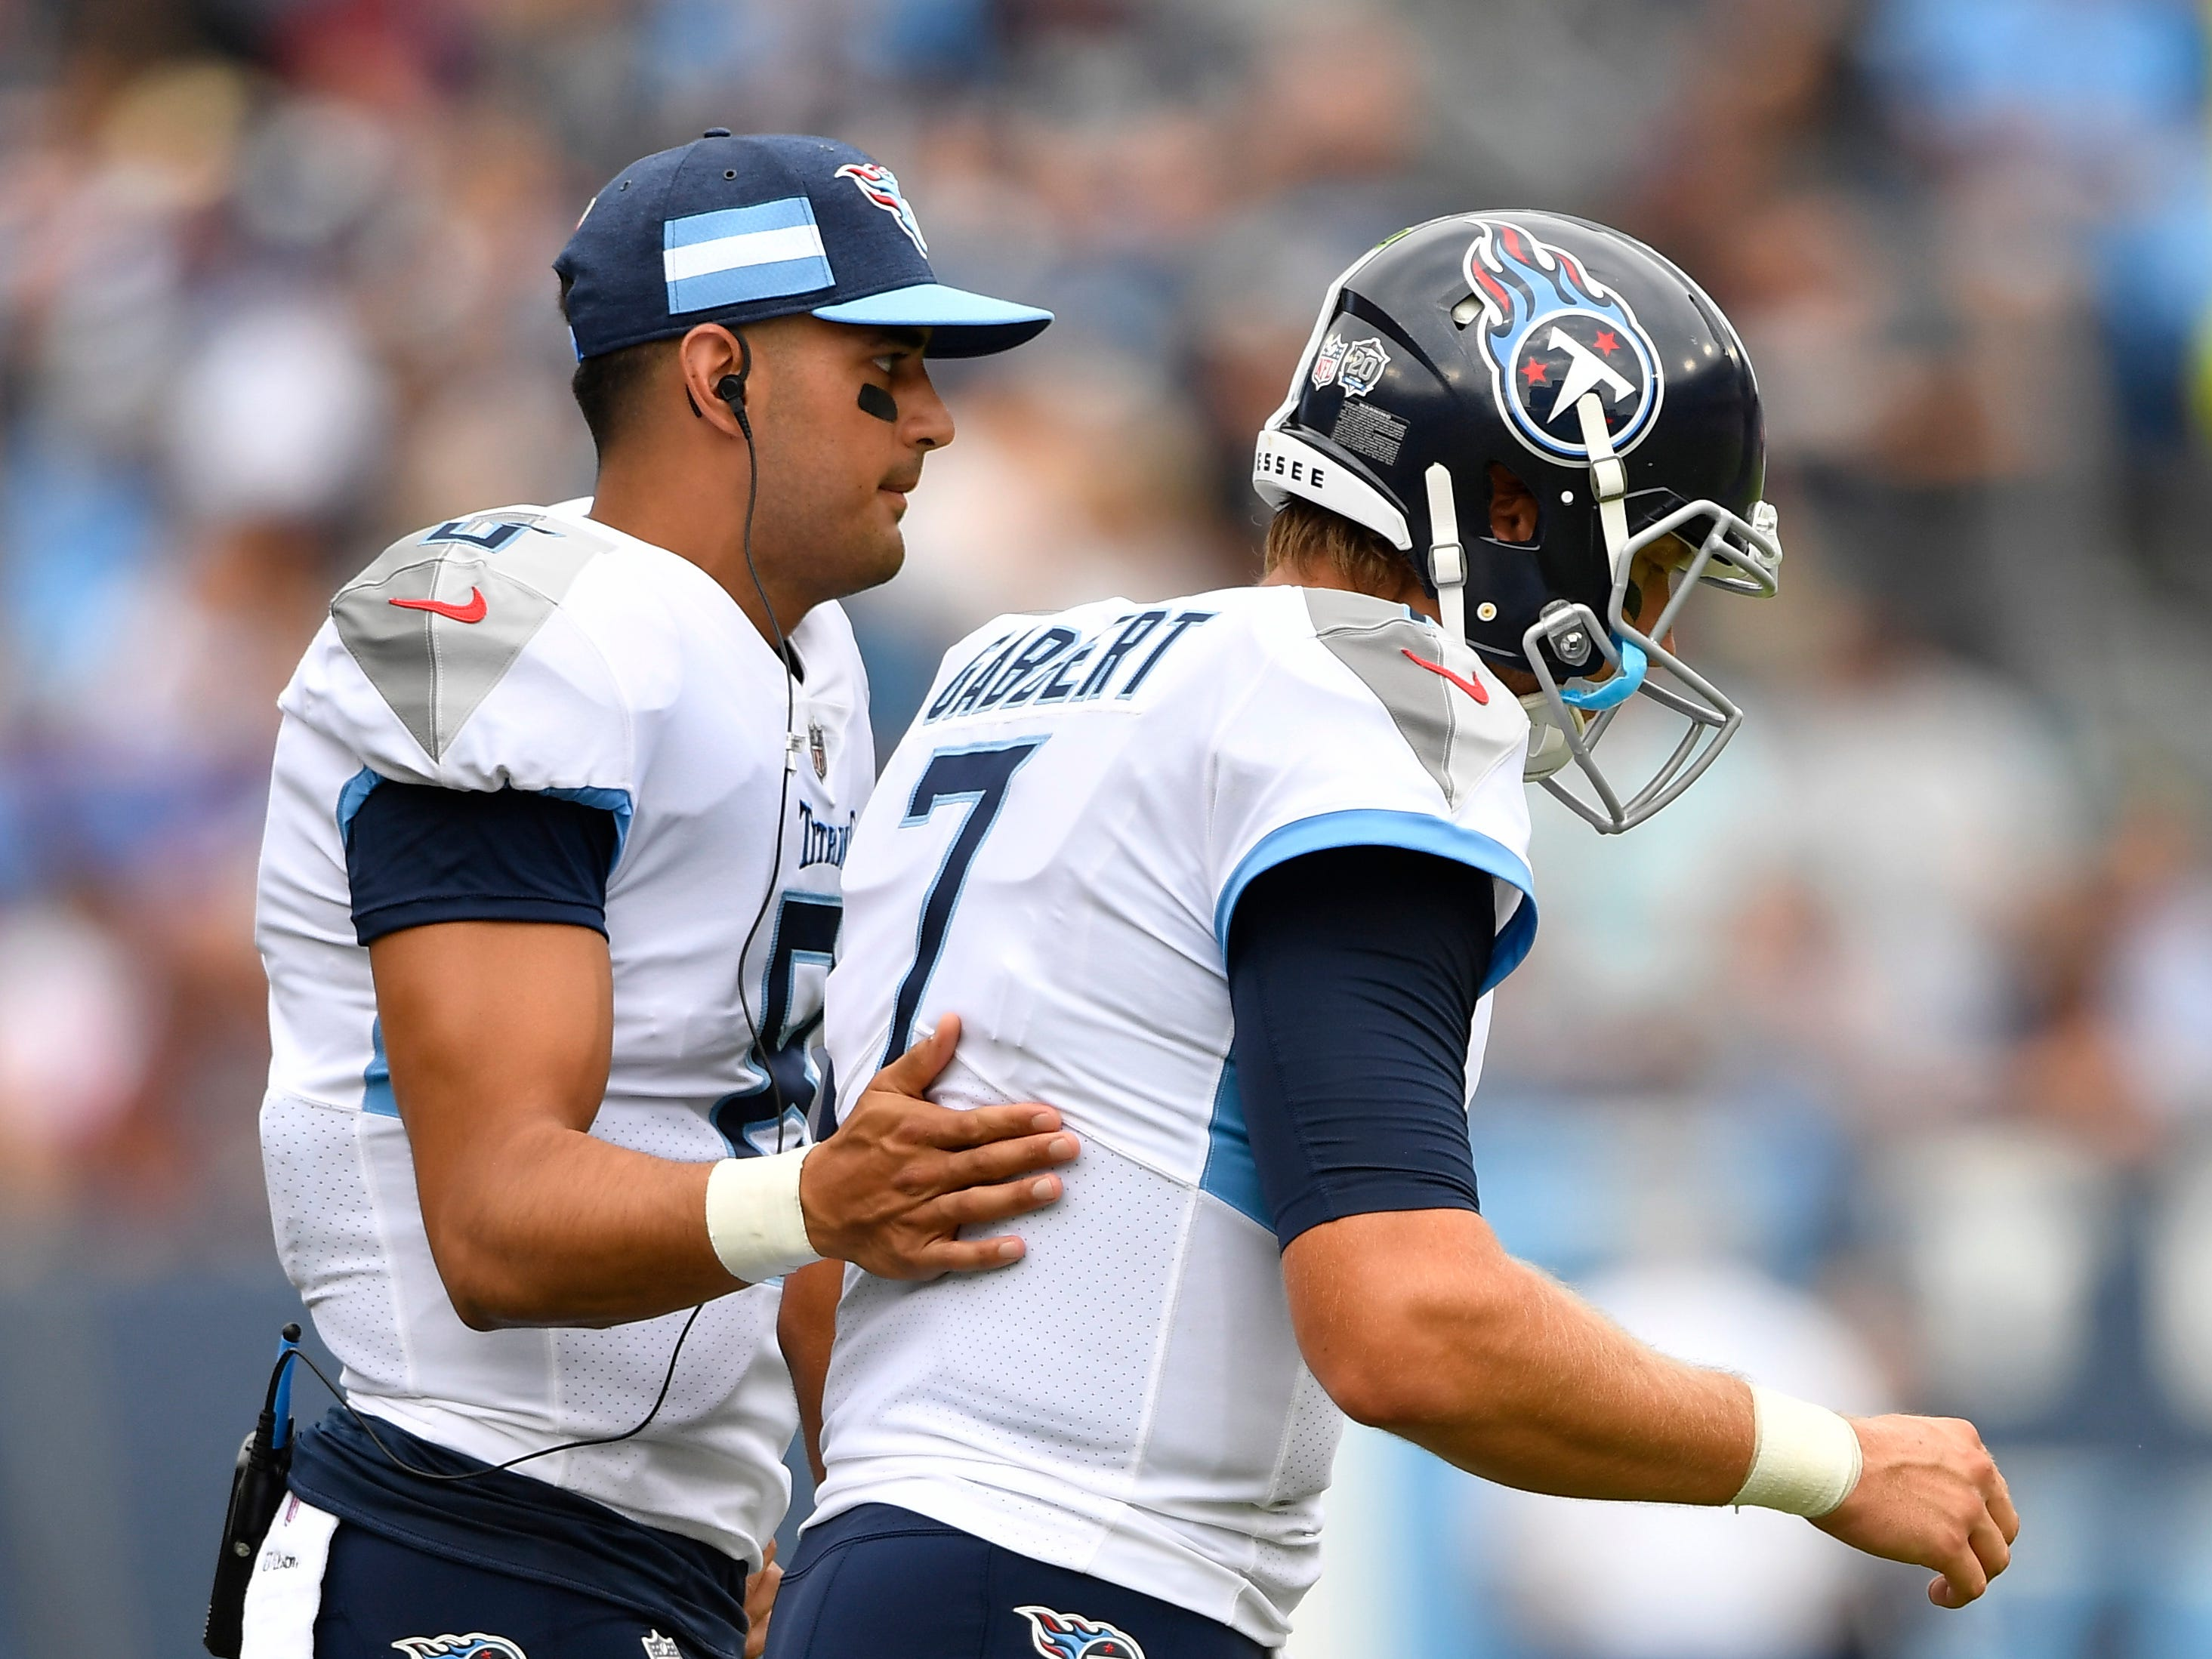 Titans quarterback Marcus Mariota (8) pats quarterback Blaine Gabbert (7) on the back as he heads onto the field in the first quarter at Nissan Stadium Sunday, Sept. 16, 2018, in Nashville, Tenn.